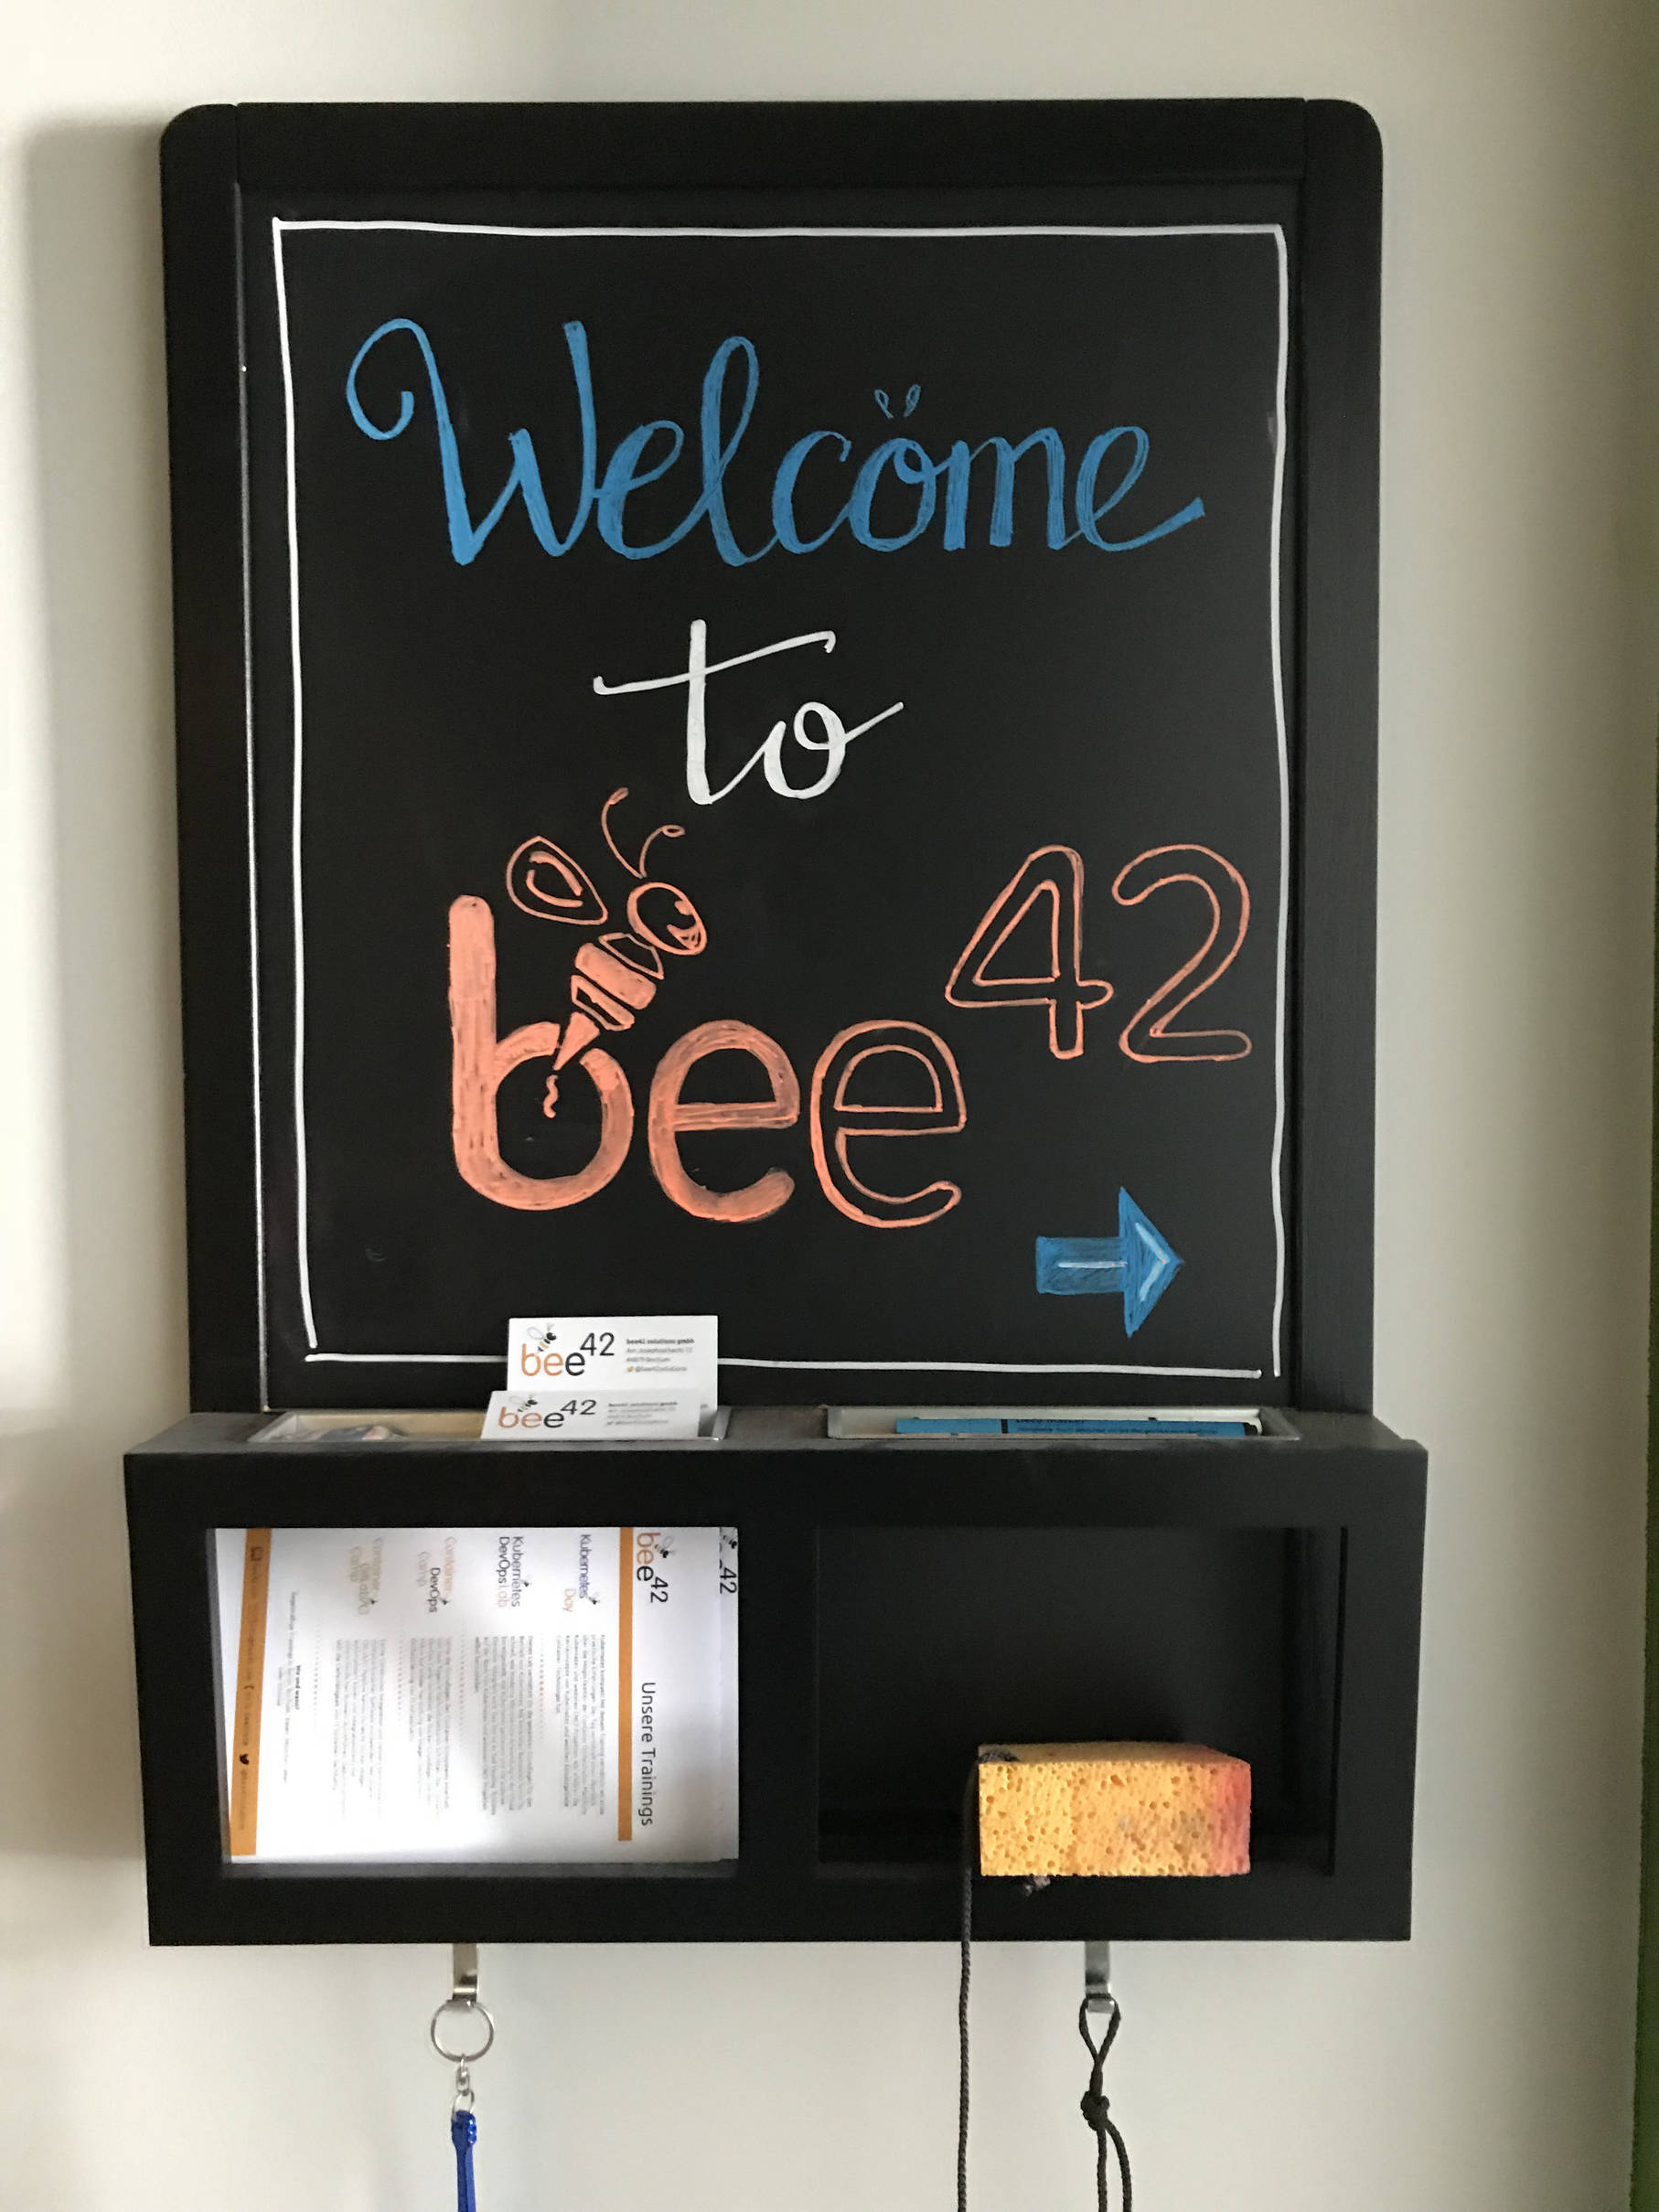 bee42 welcome